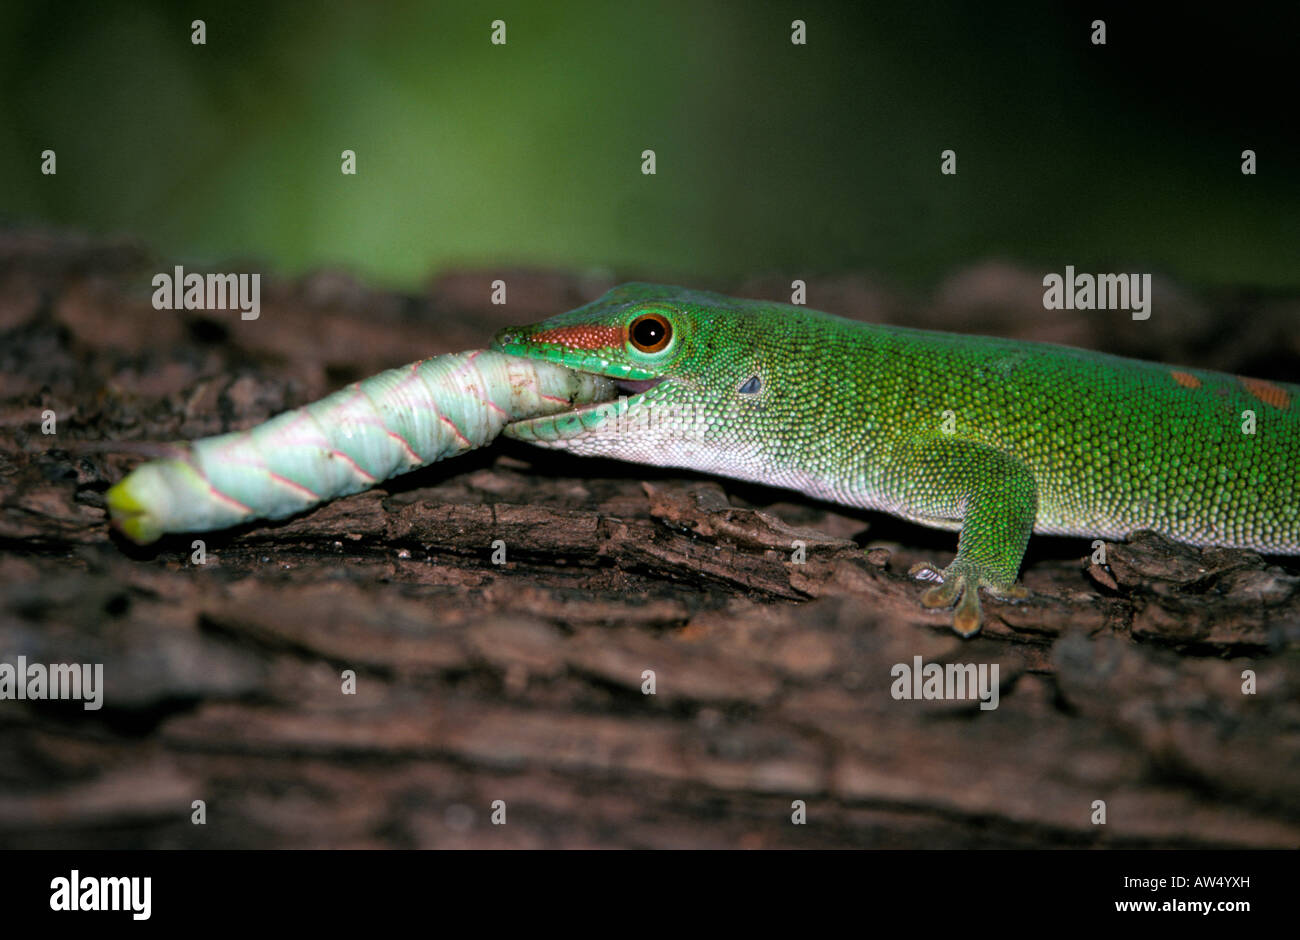 eating gecko stock photos u0026 eating gecko stock images alamy